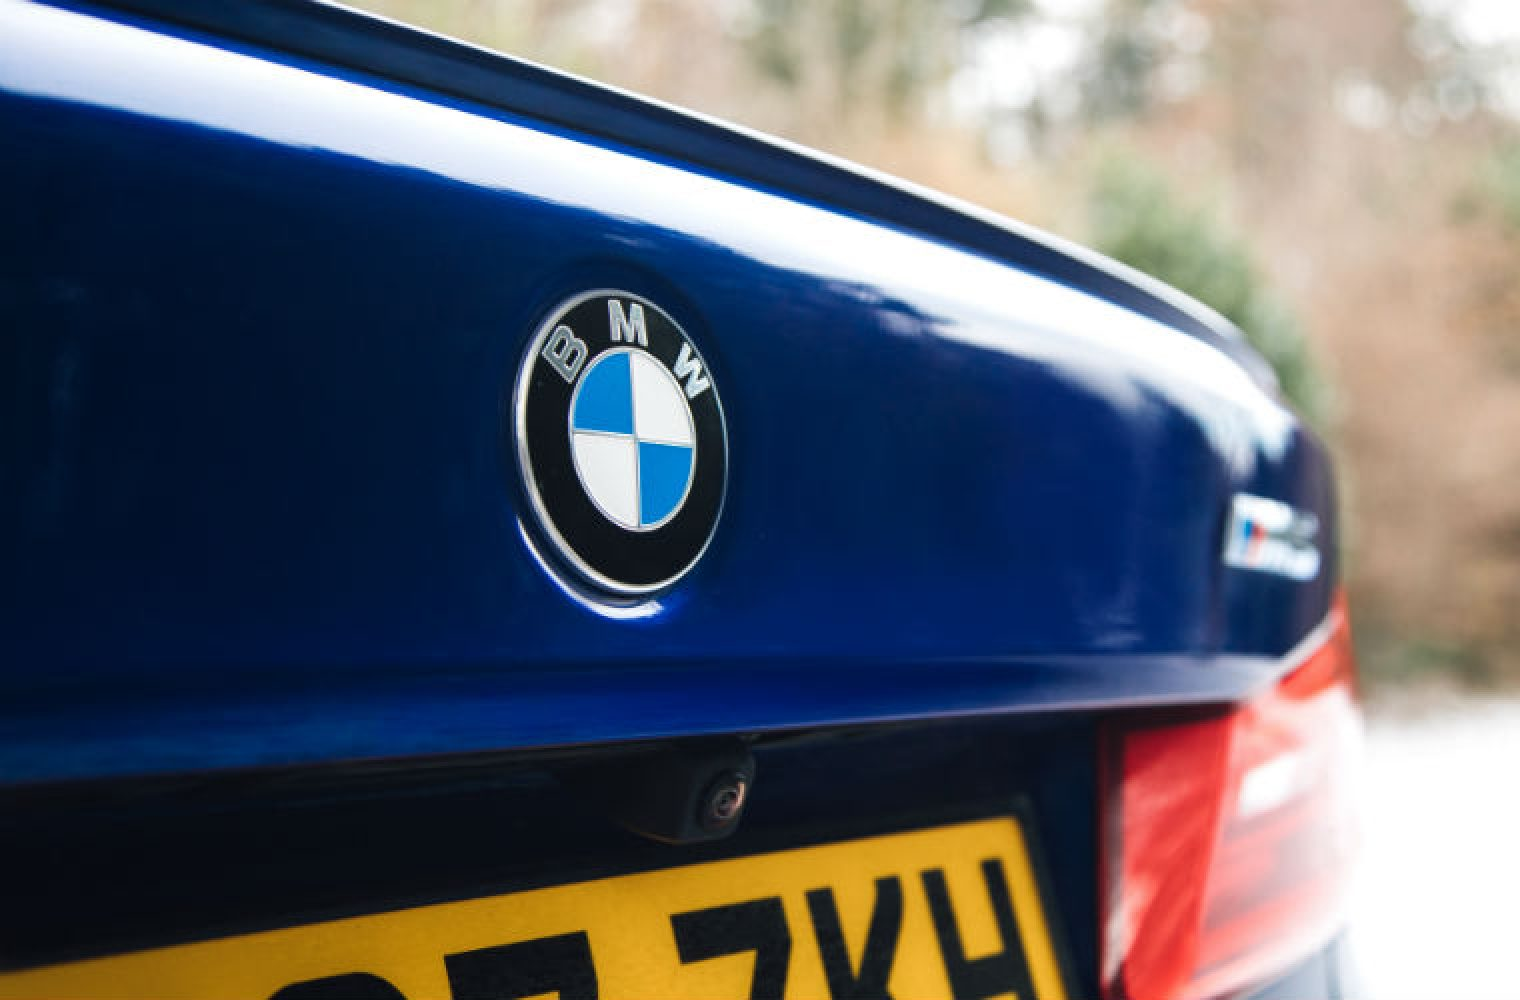 BMW struggles to cope with scale of EGR valve recall